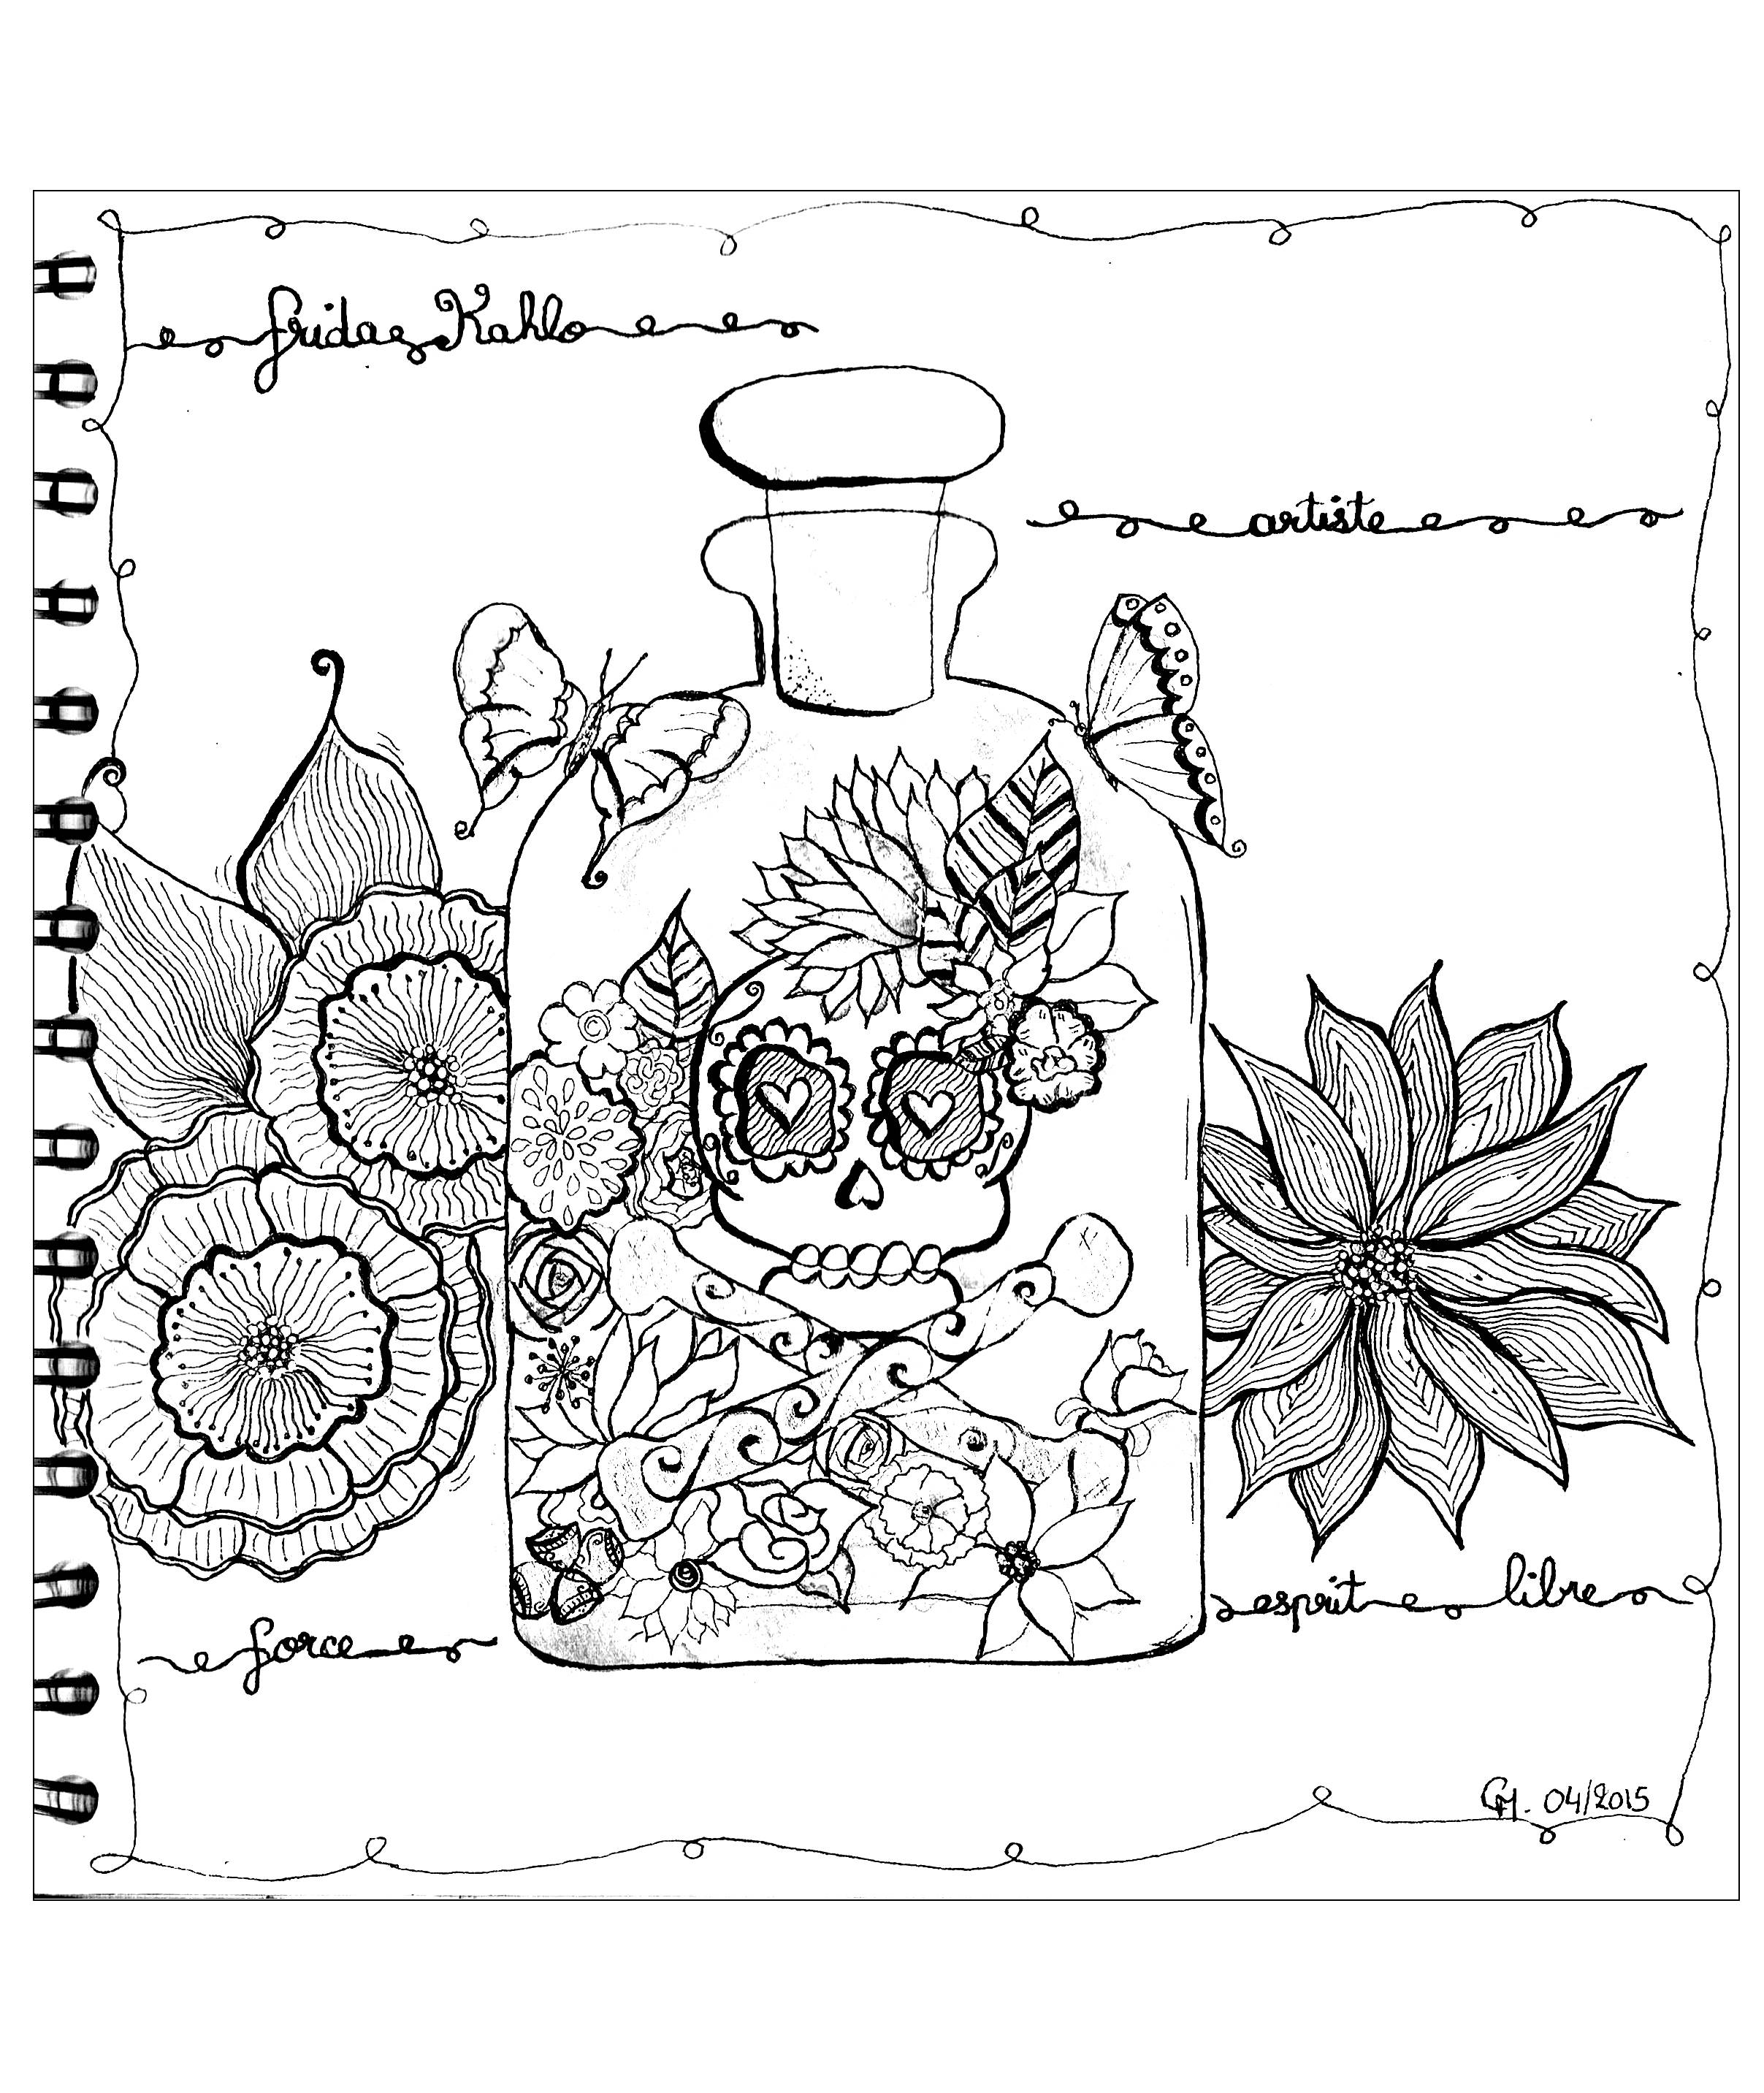 'Hommage to Frida Khalo', exclusive zentangle coloring page See the original work